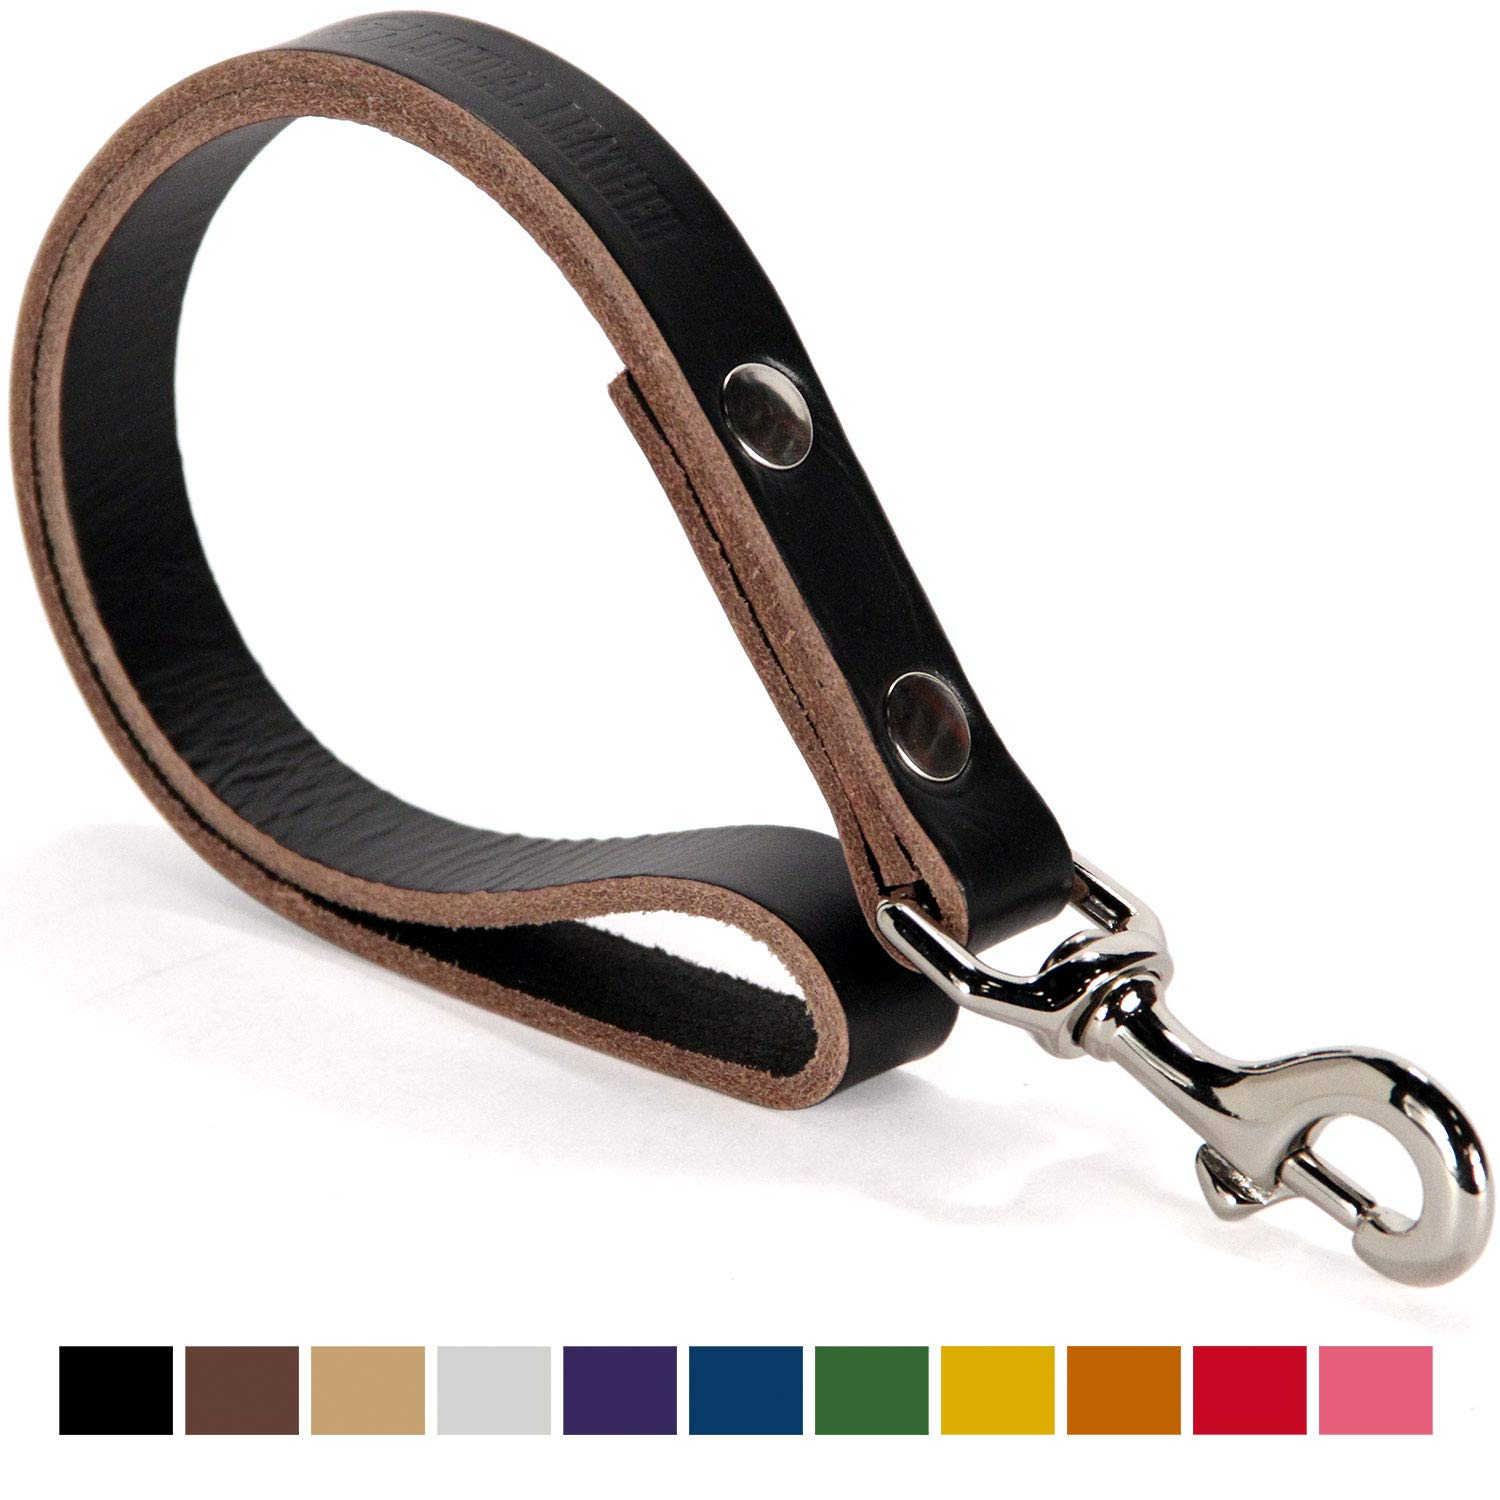 Logical Leather Traffic Lead Best Full Grain Heavy Duty Genuine Short Leather Leash Lifetime Guarantee Black